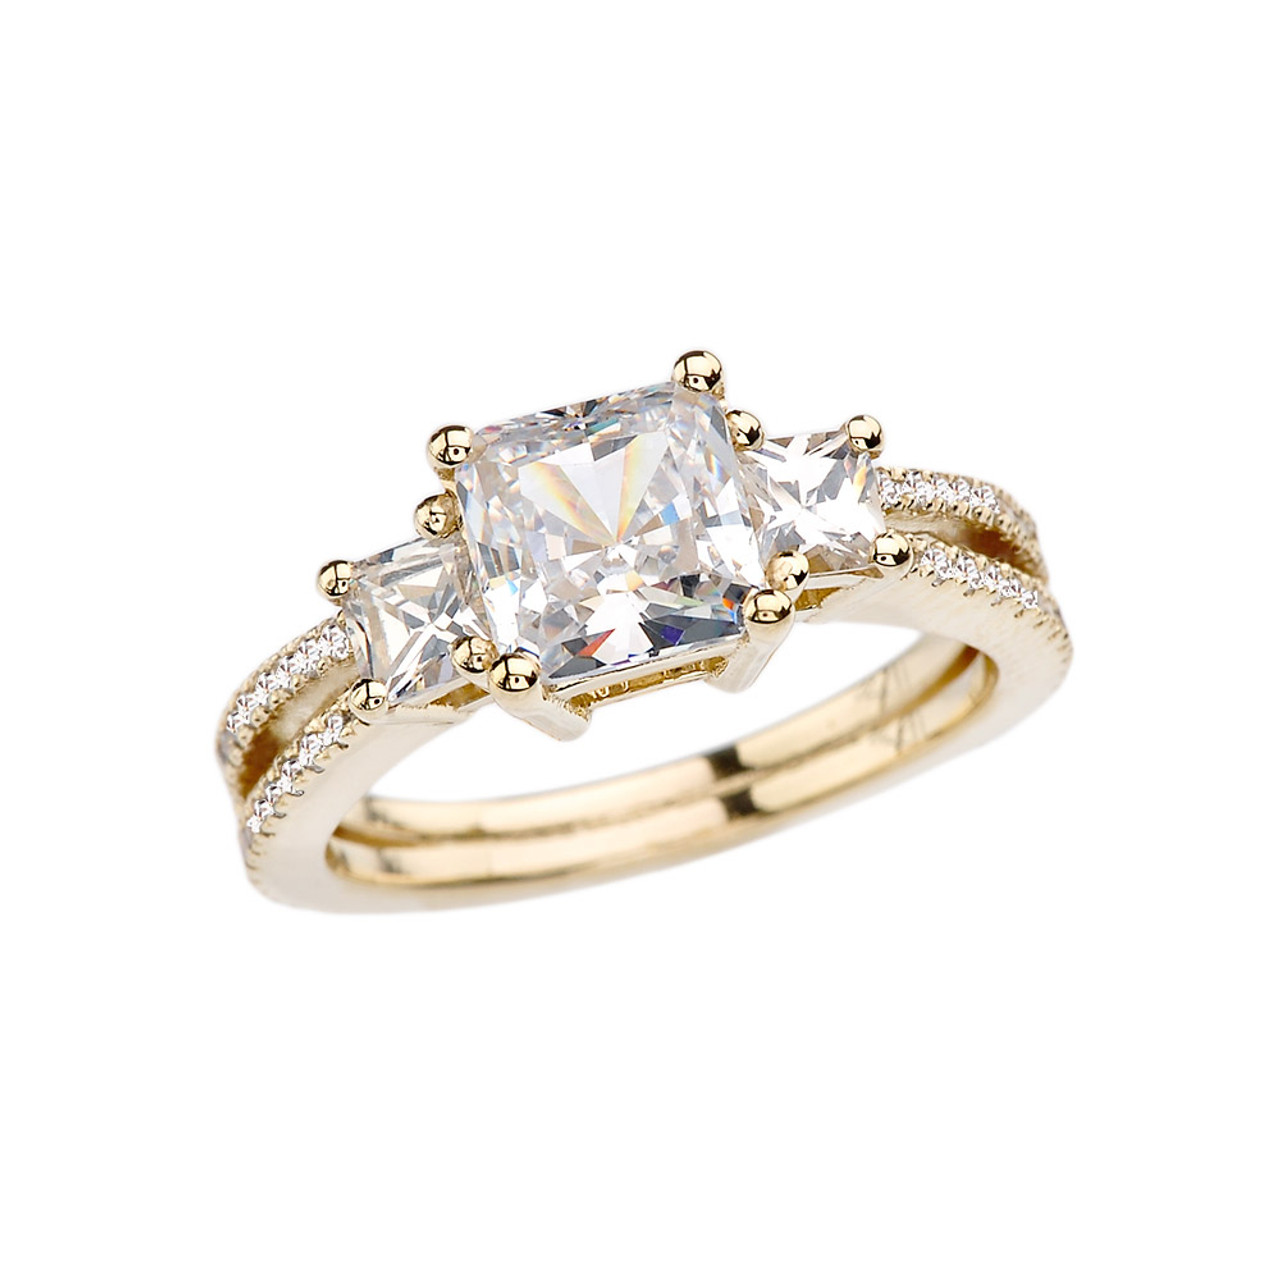 b26927503fcff Yellow Gold Double Raw Elegant Princess Cut Engagement/Proposal Ring With  Over 3 Ct Princess Cut Cubic Zirconia